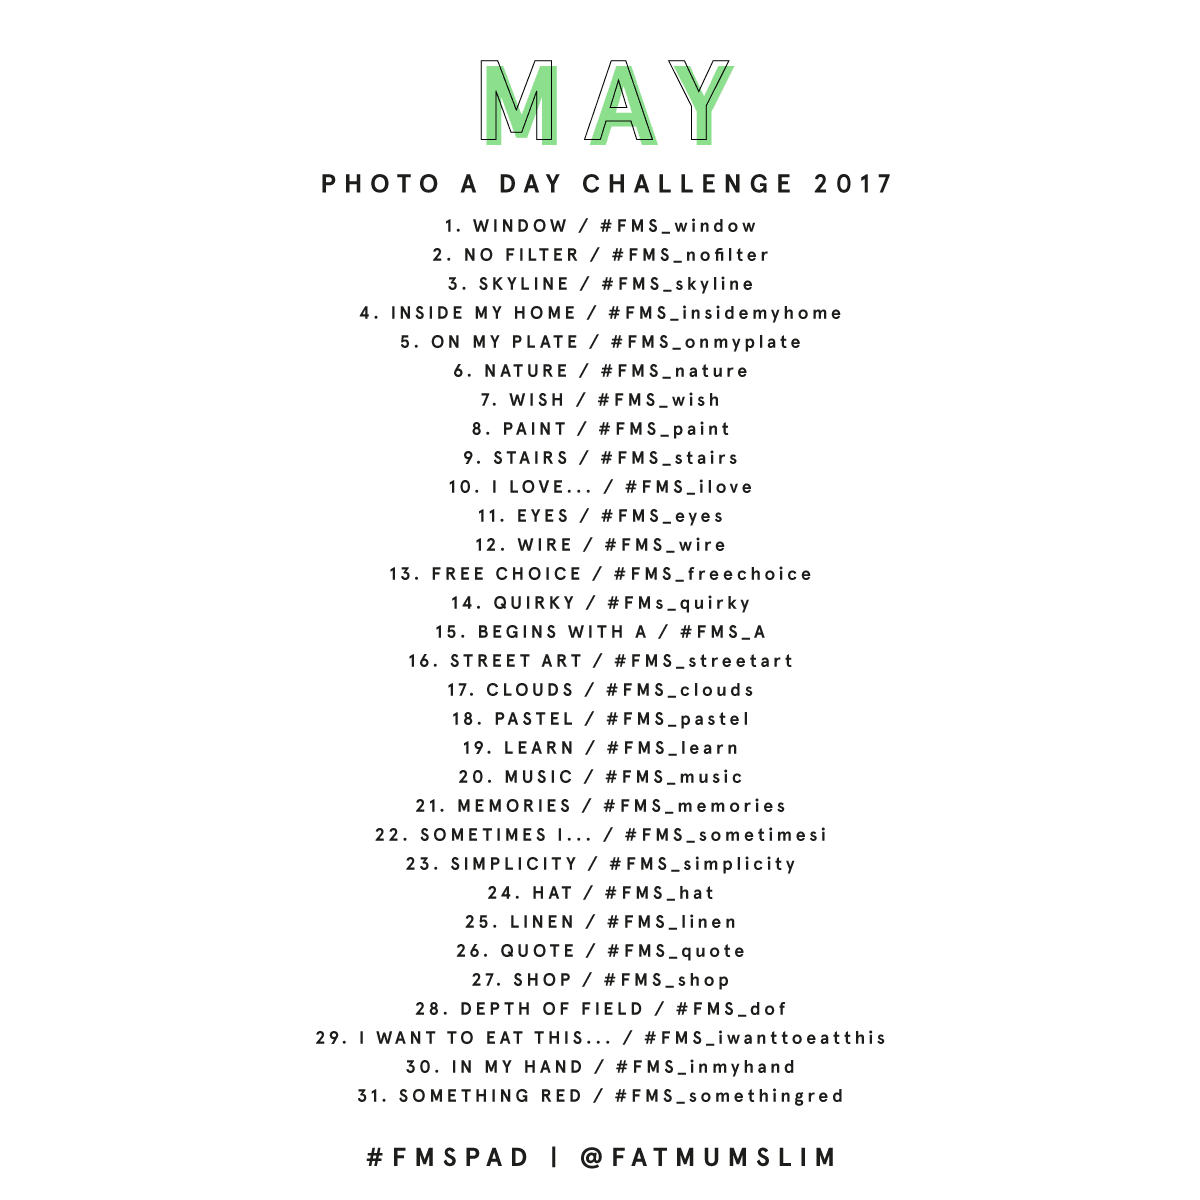 May Photo A Day Challenge 2017